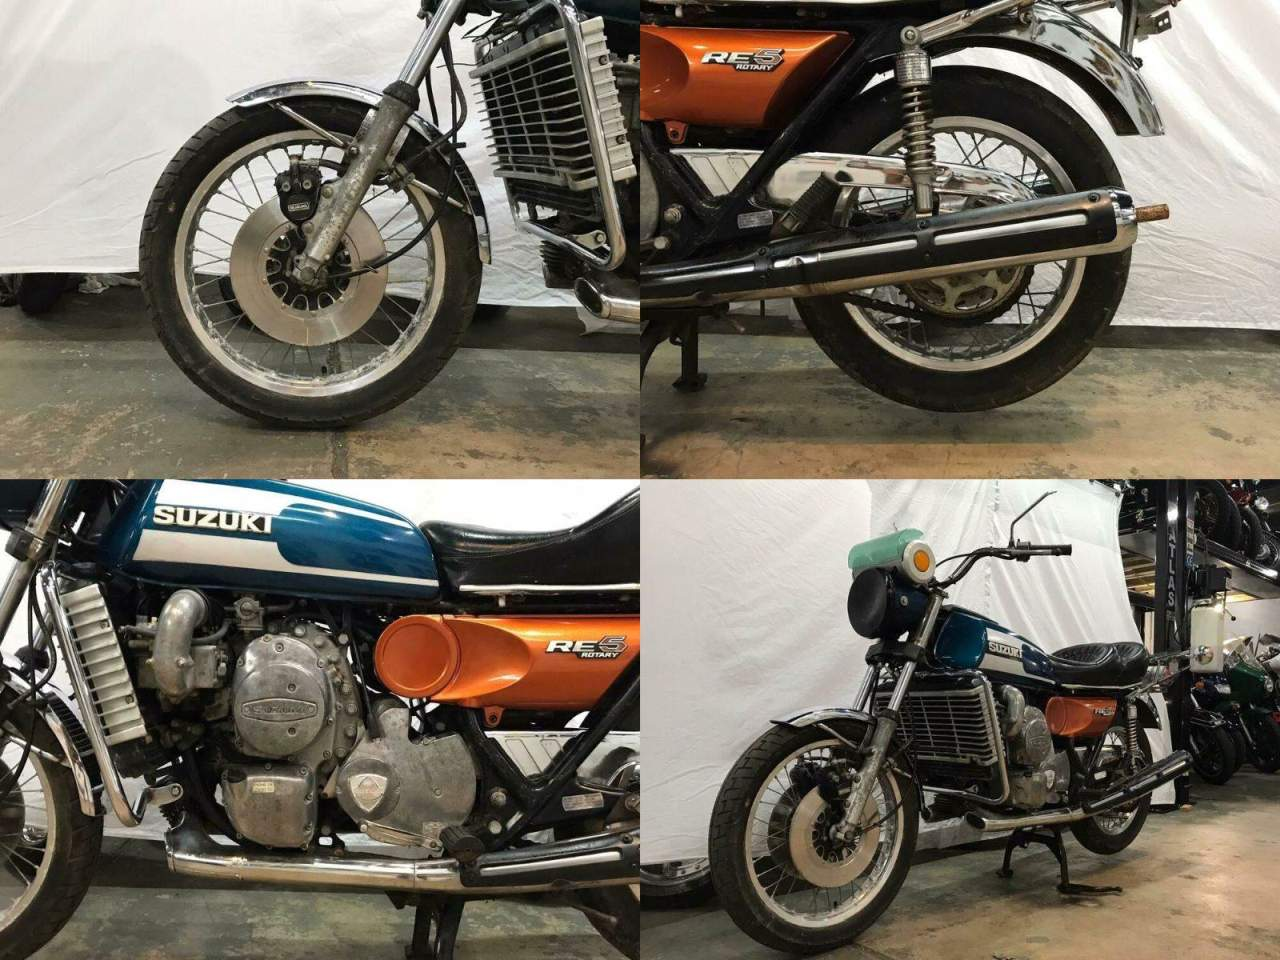 1975 Suzuki Other  used for sale near me